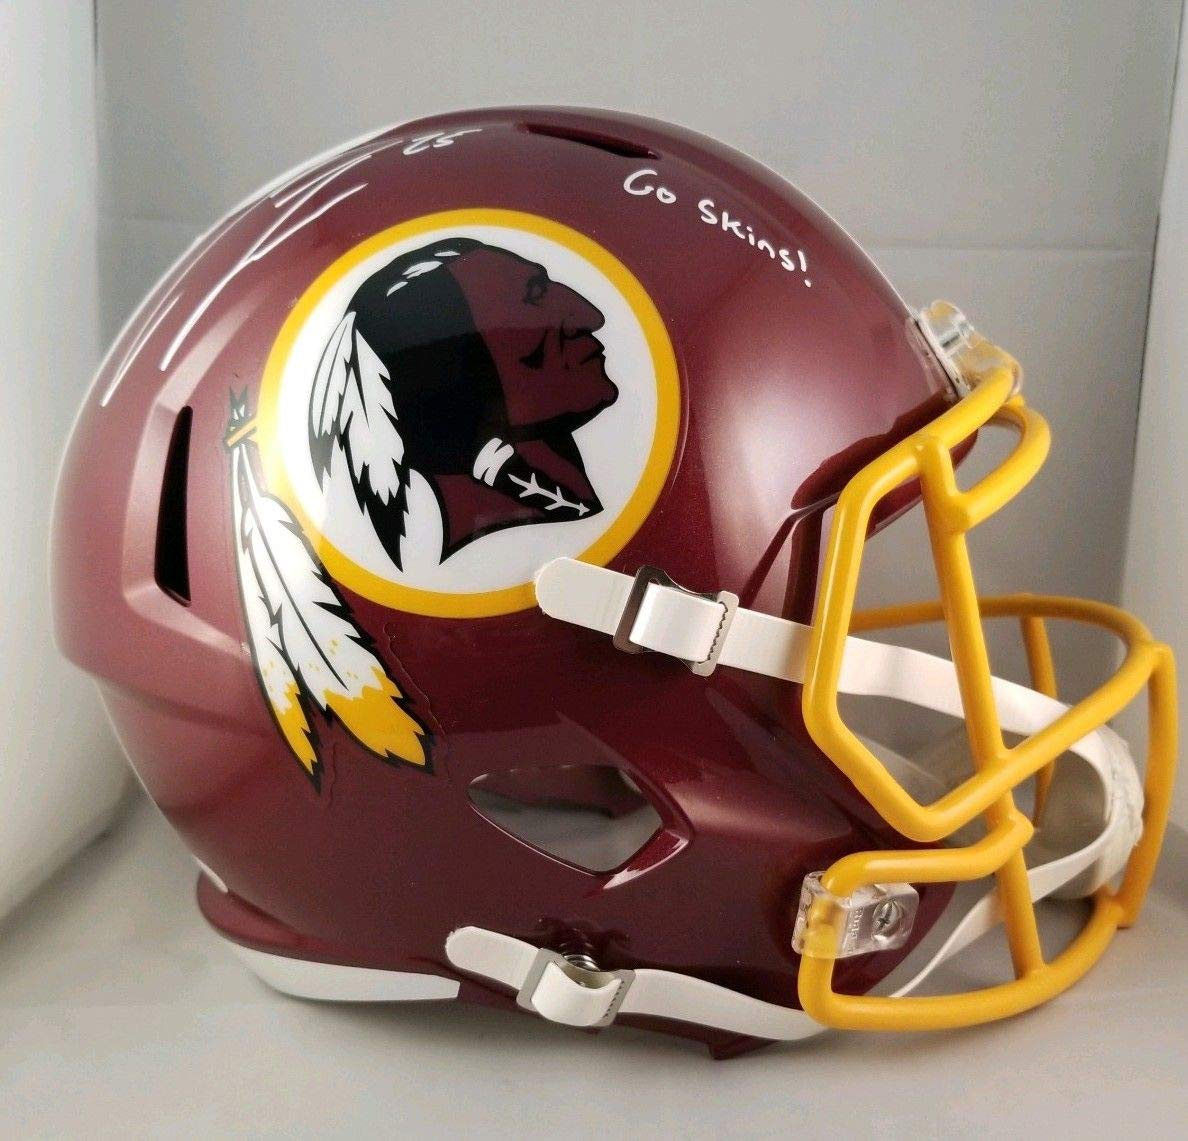 Amazon.com  Chris Thompson Autographed Signed Full Size Helmet Washington  Redskins JSA  Sports Collectibles 9fb8075d4